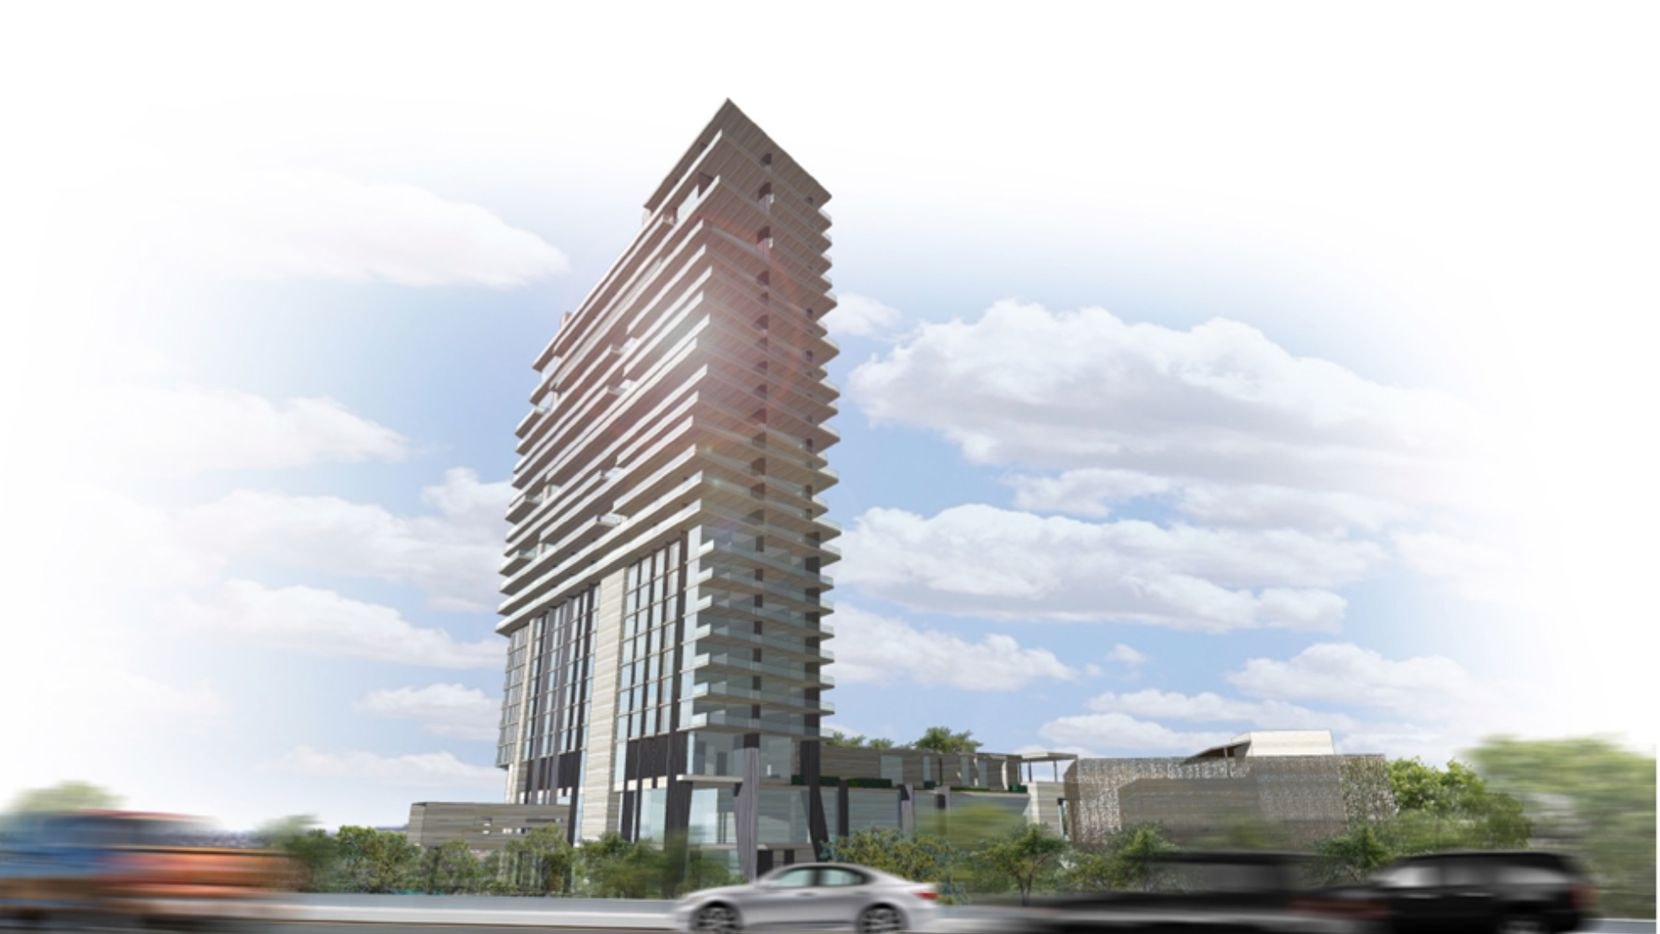 The 25-story tower is planned at the tollway and John Hickman Parkway.